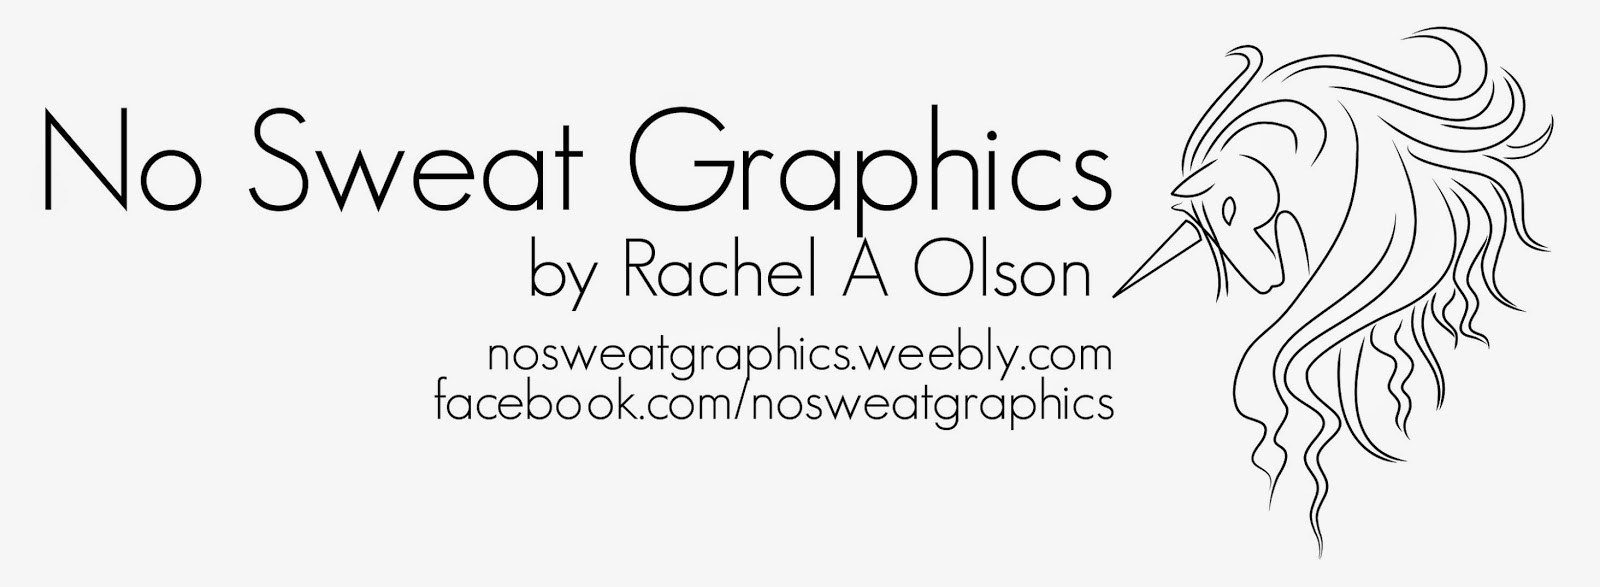 http://nosweatgraphics.weebly.com